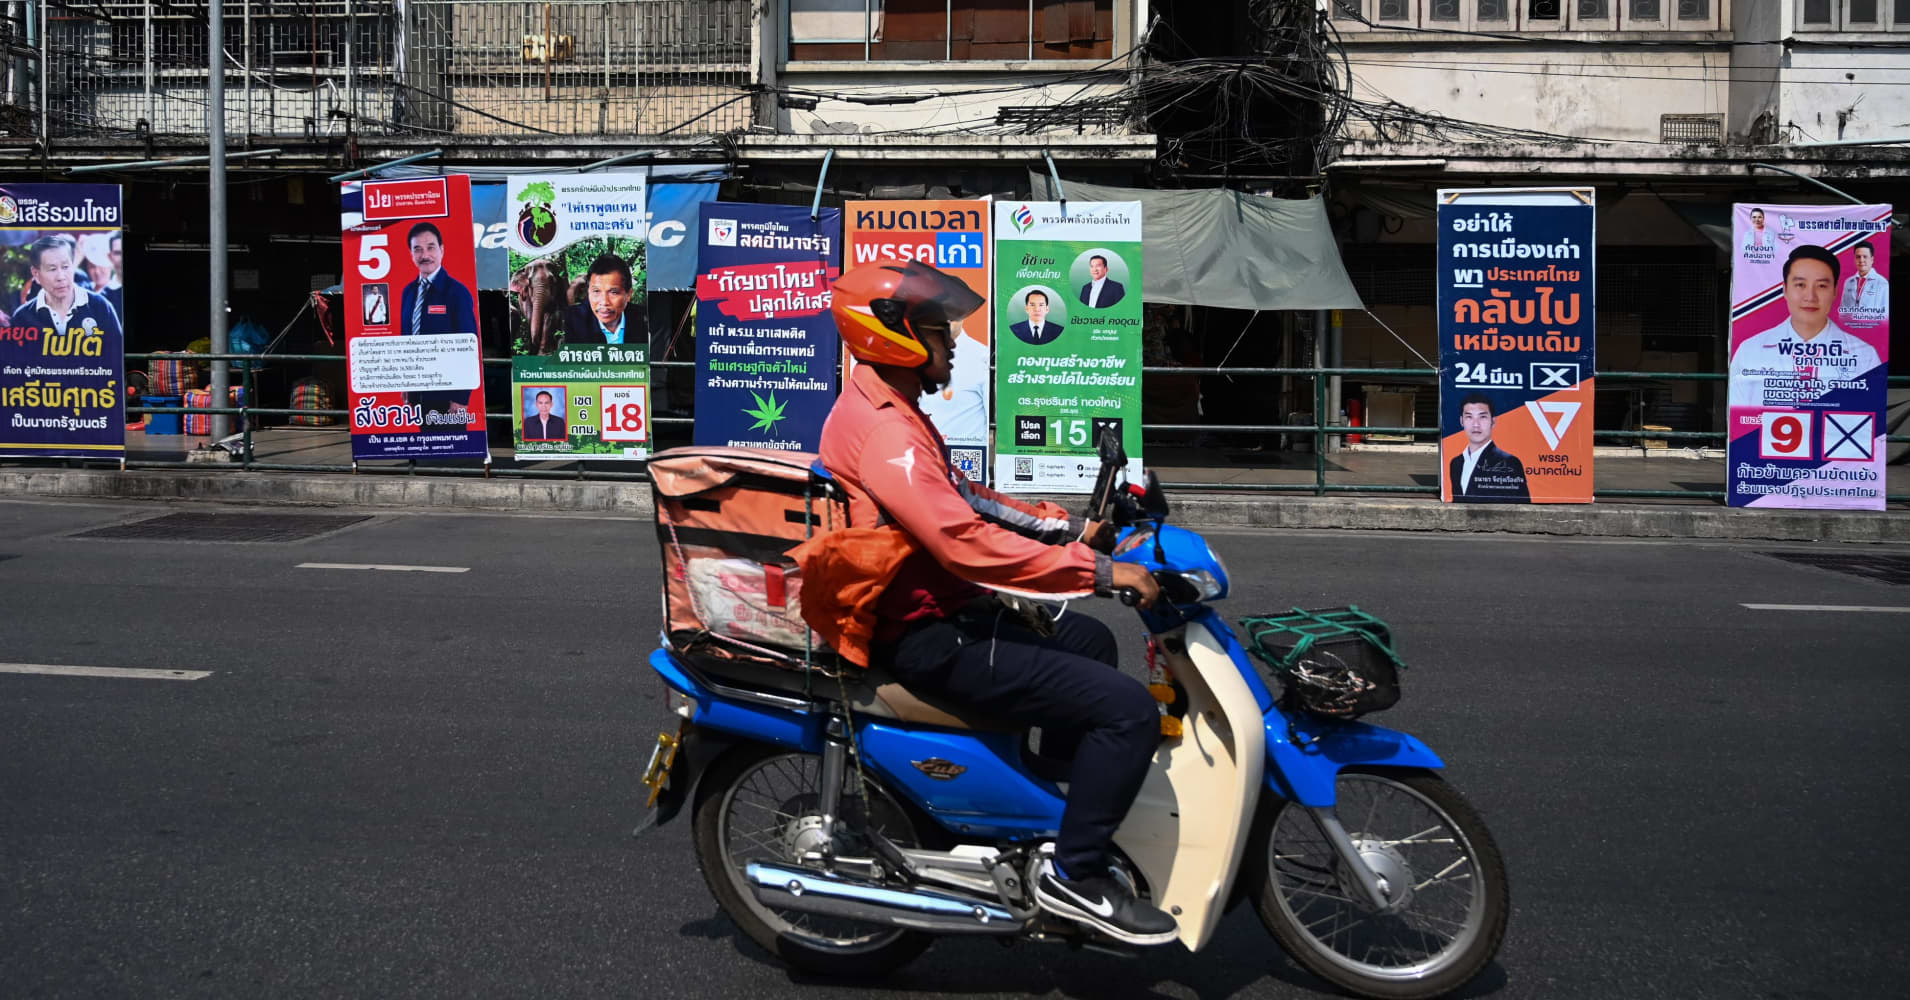 Thailand held an election more than a week ago — voters still don't know who won